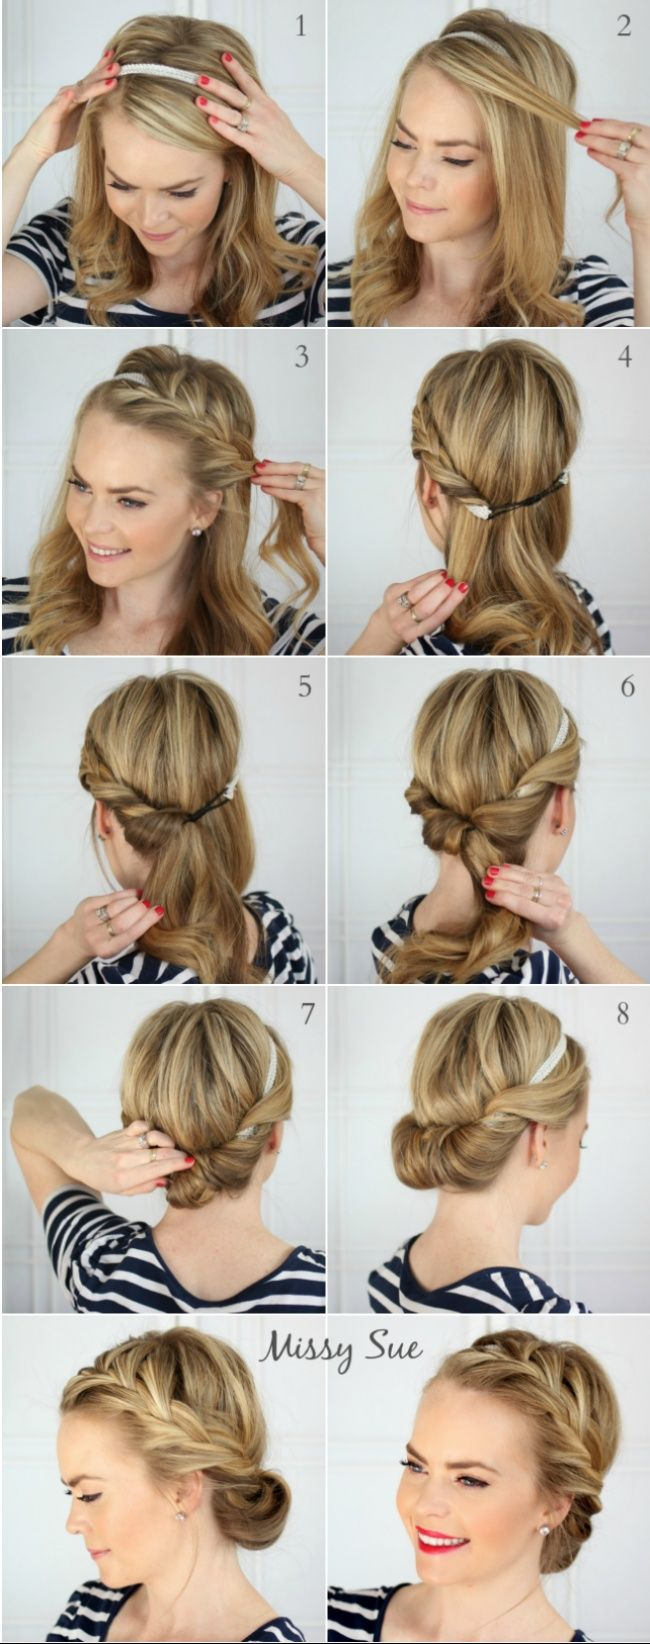 Ten 'lazy' hairstyles for summer